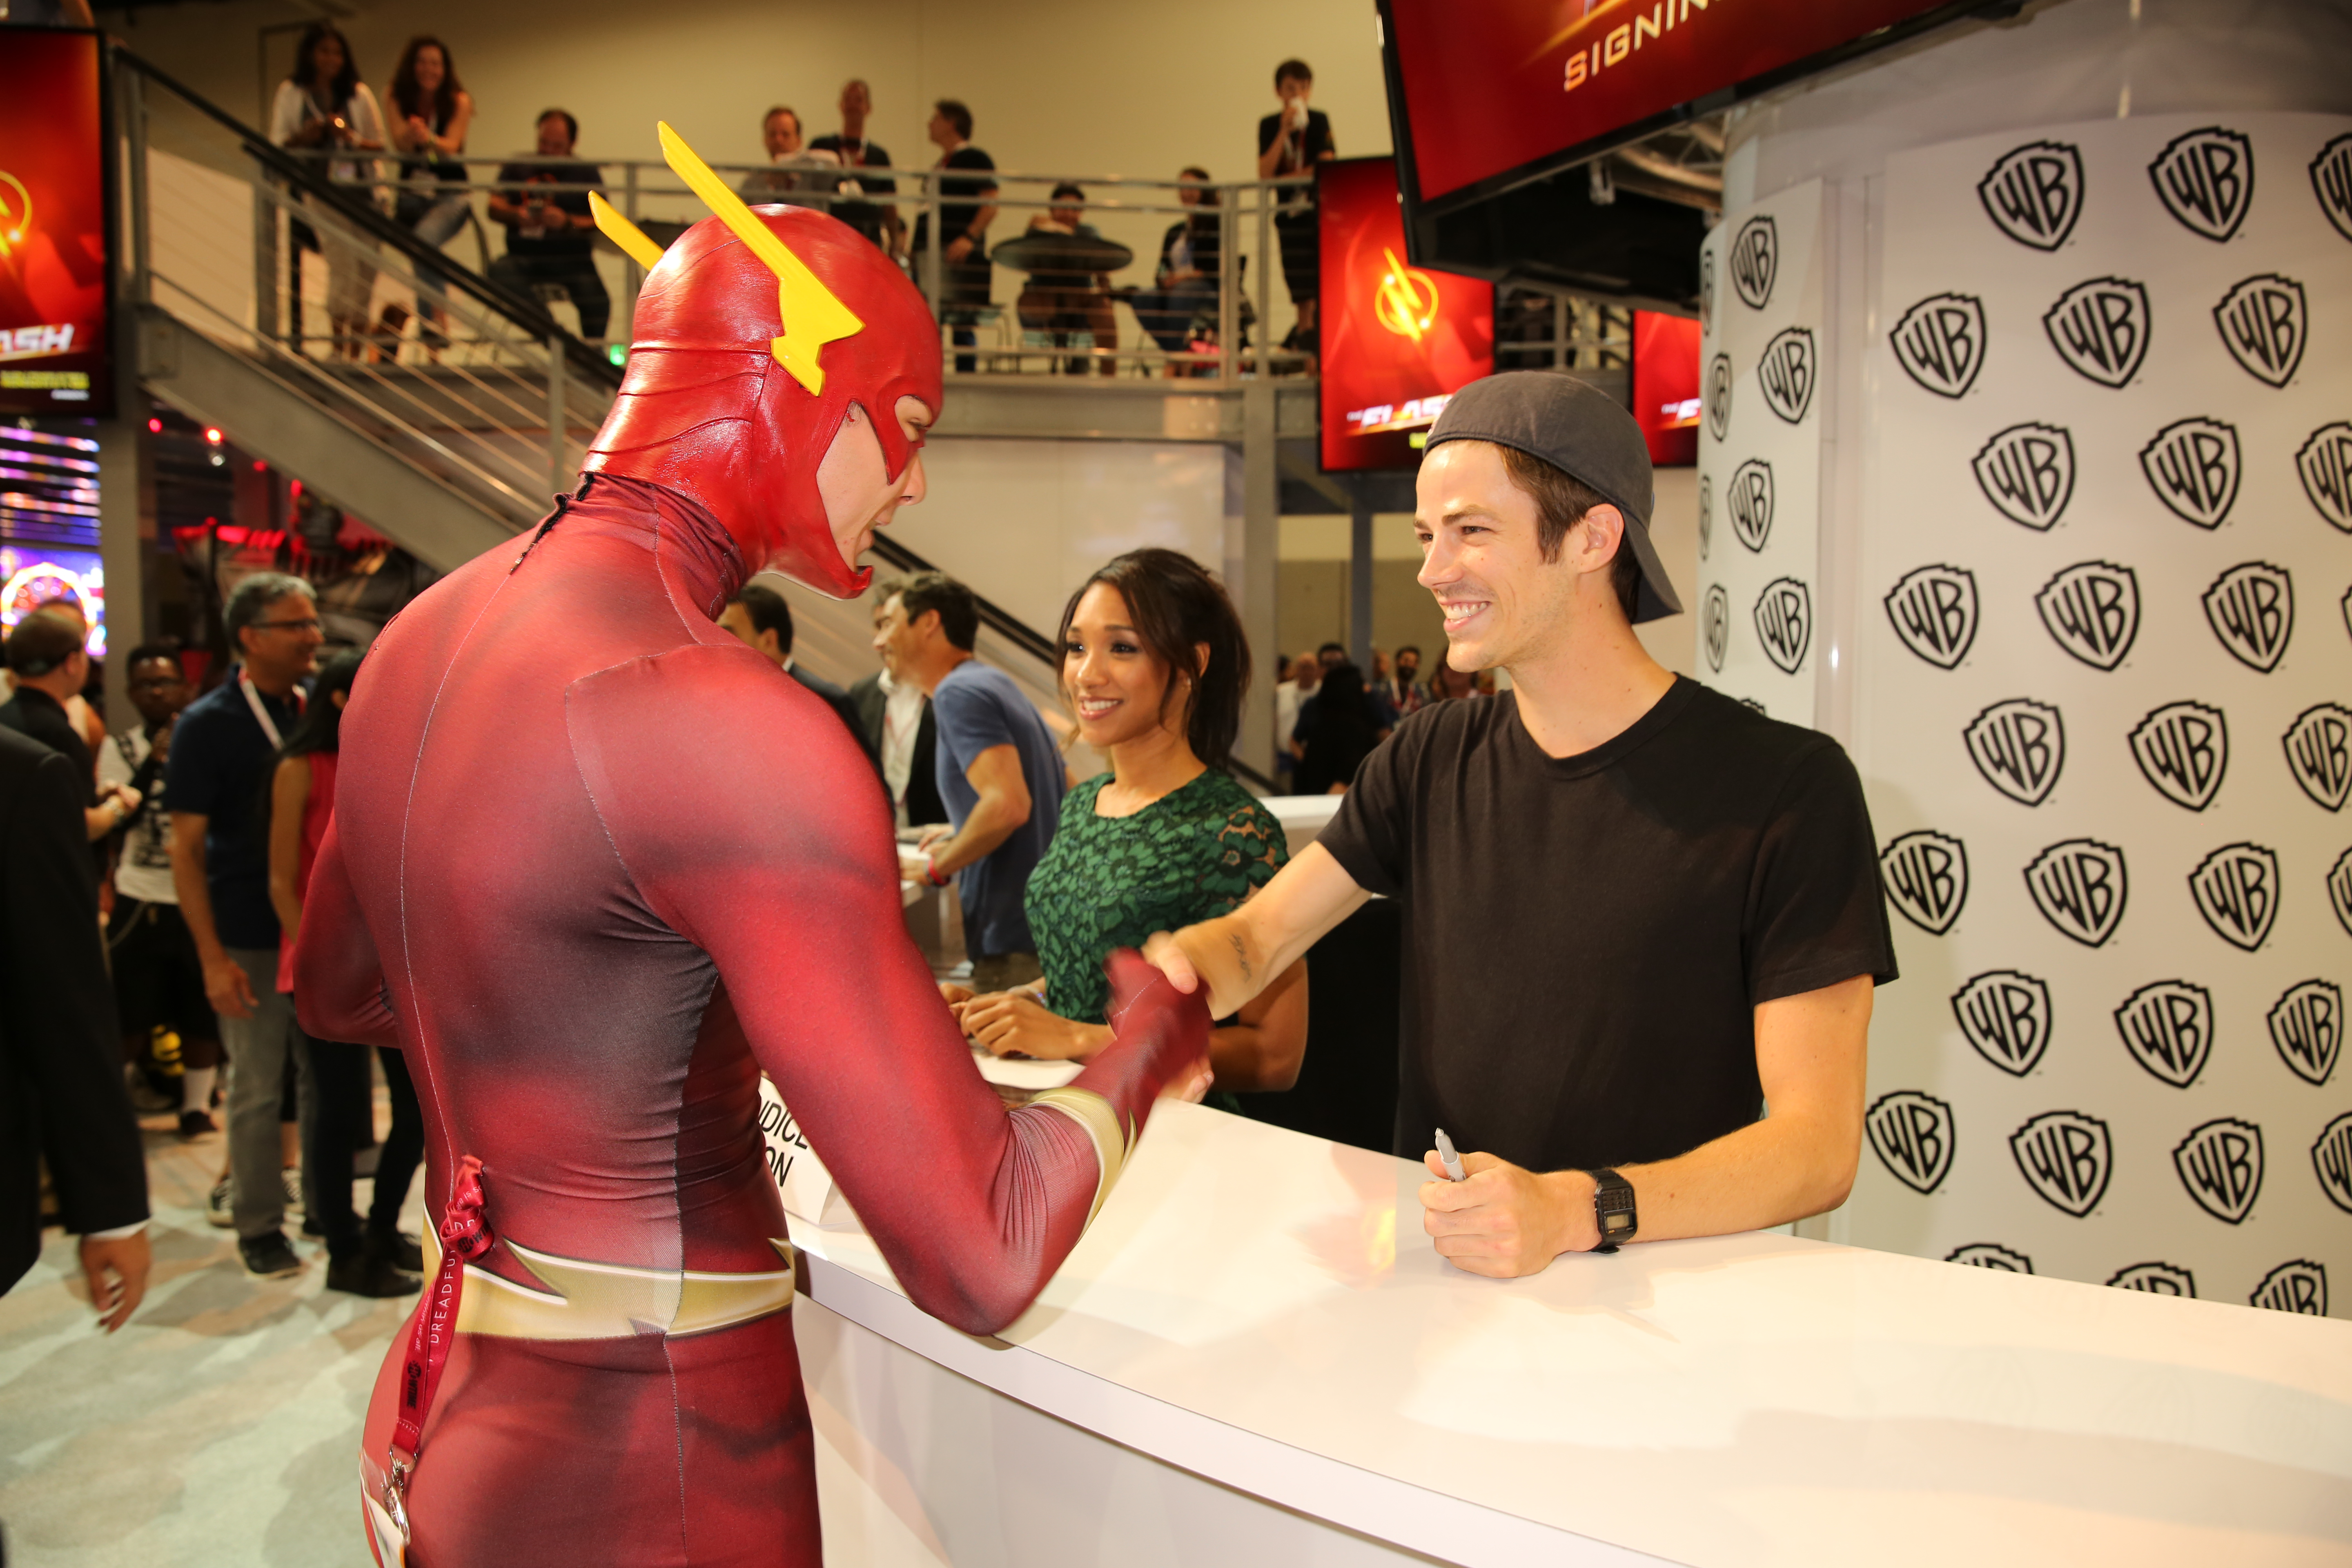 The flash signing a super flash fan meets series star grant gustin barry allenthe flash at the flash signing in the warner bros booth during comic con 2015 m4hsunfo